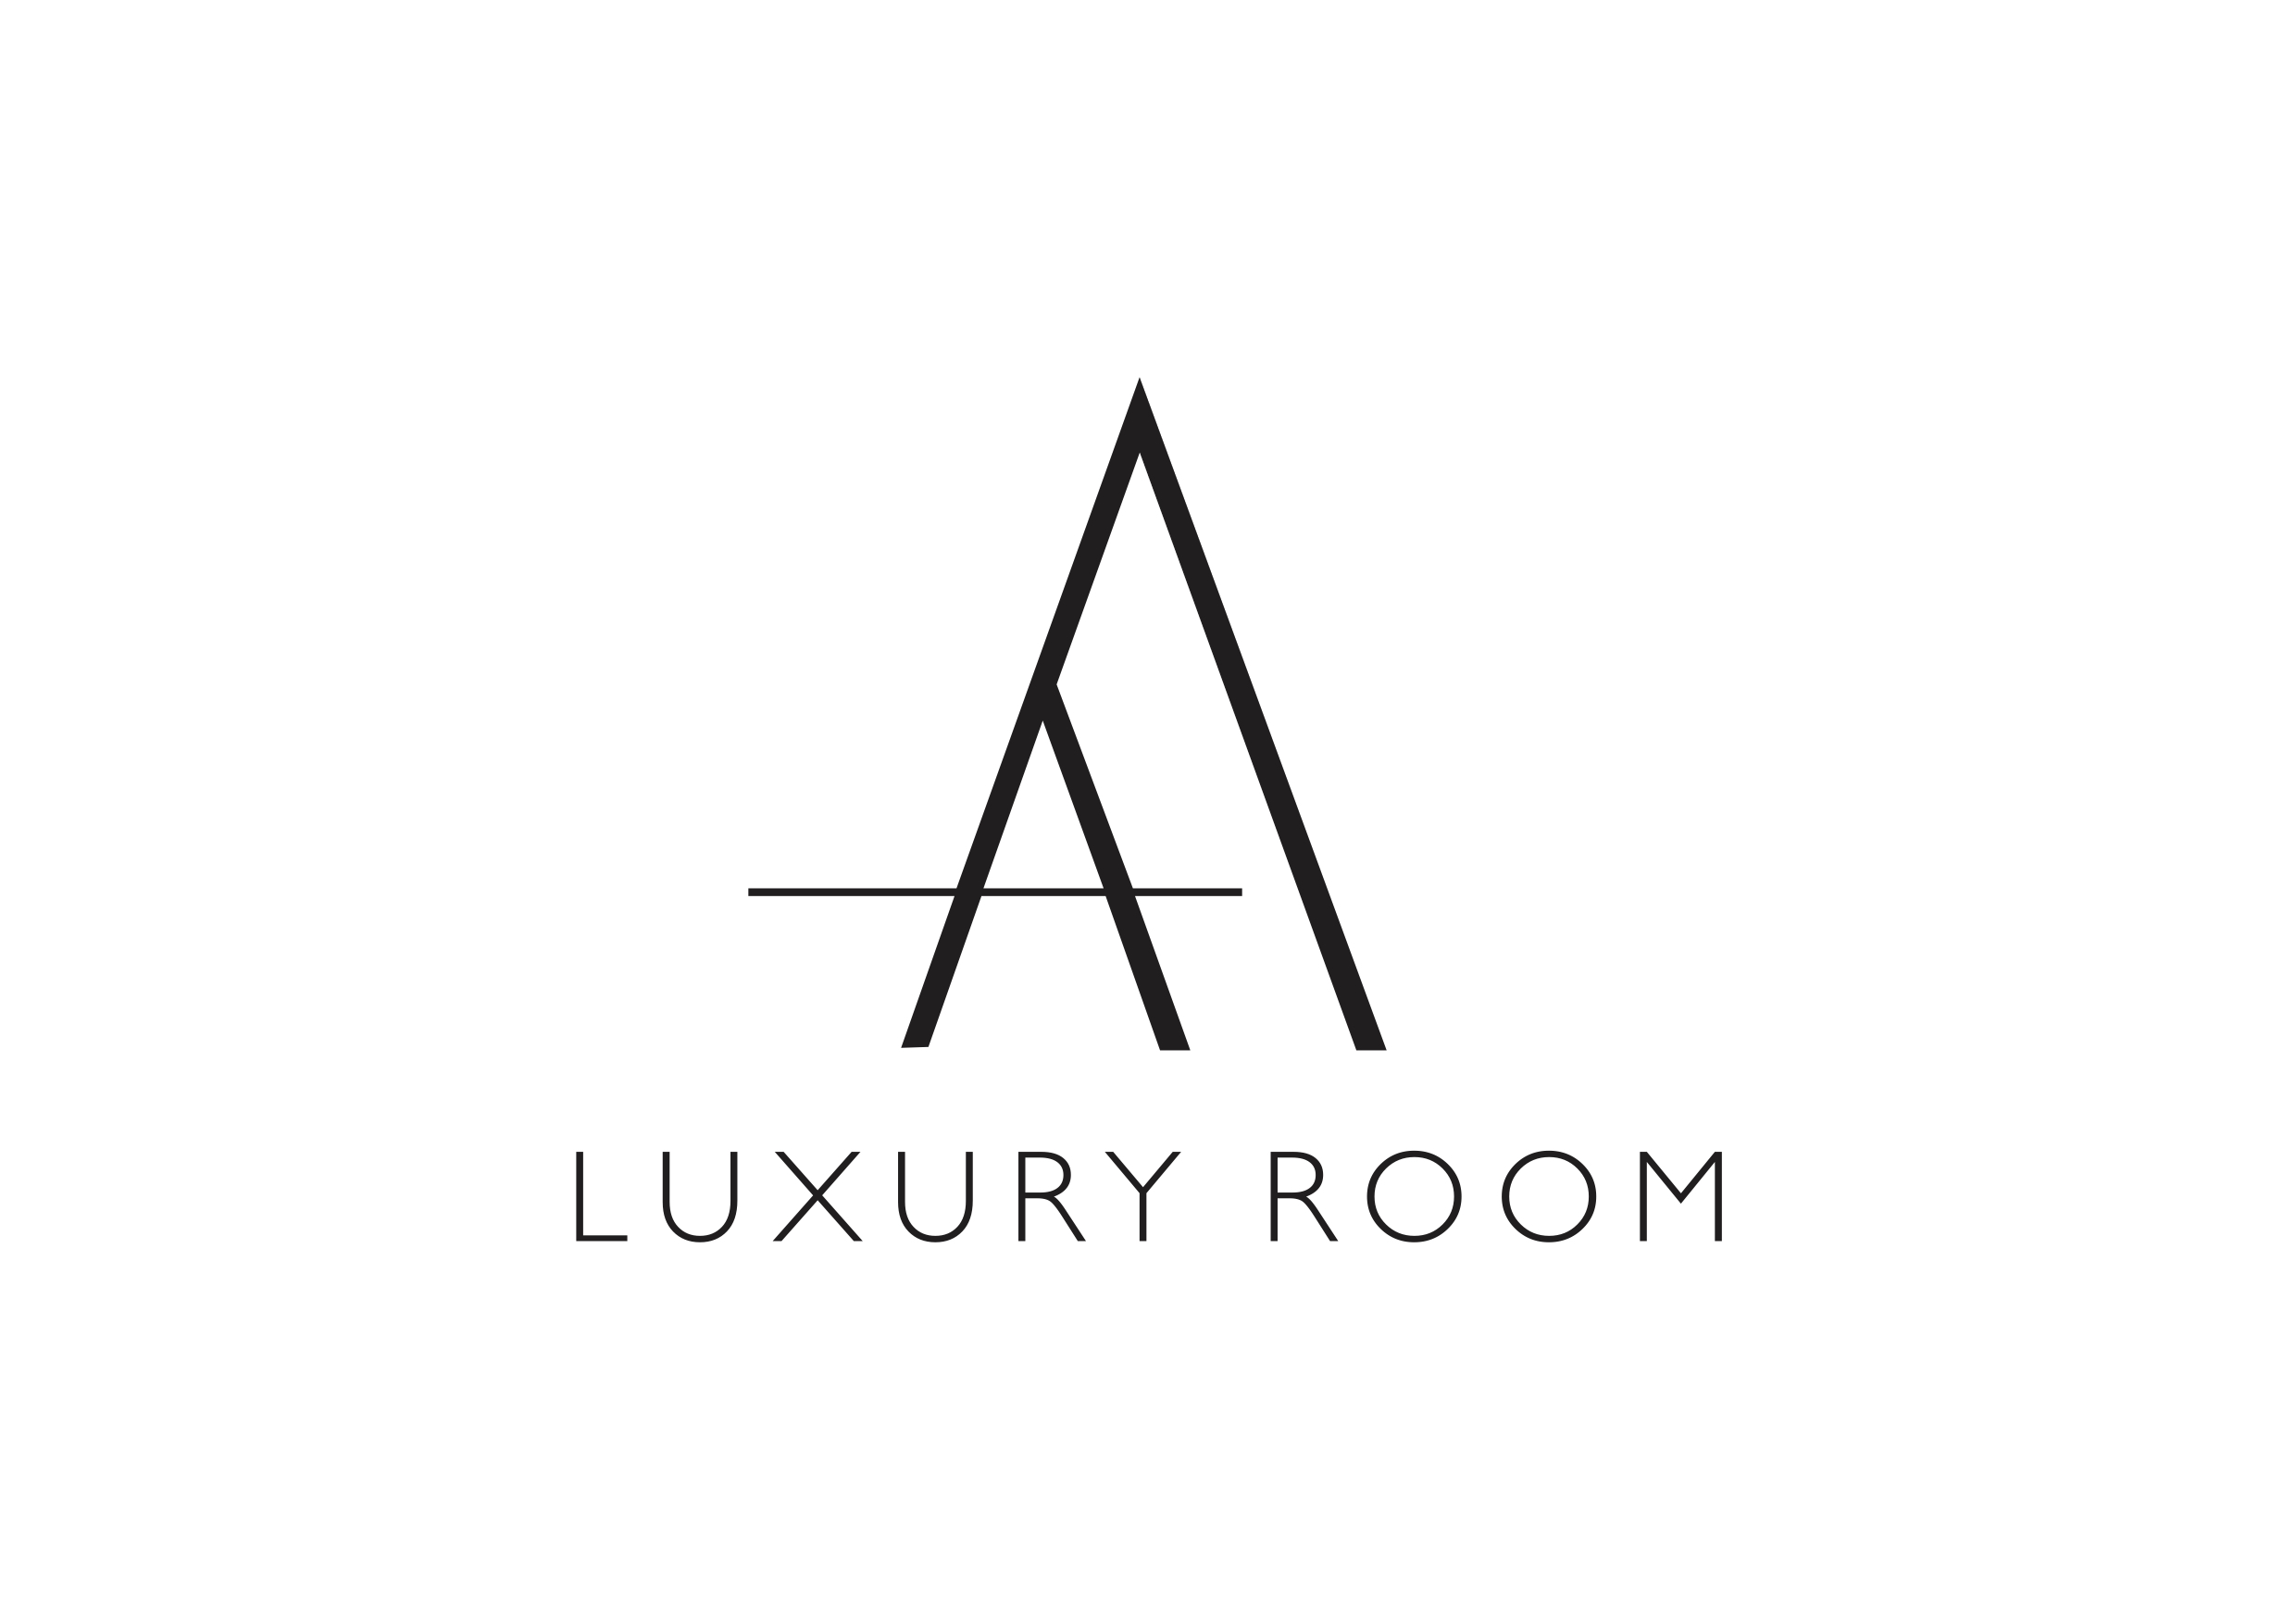 Double A Luxury Room